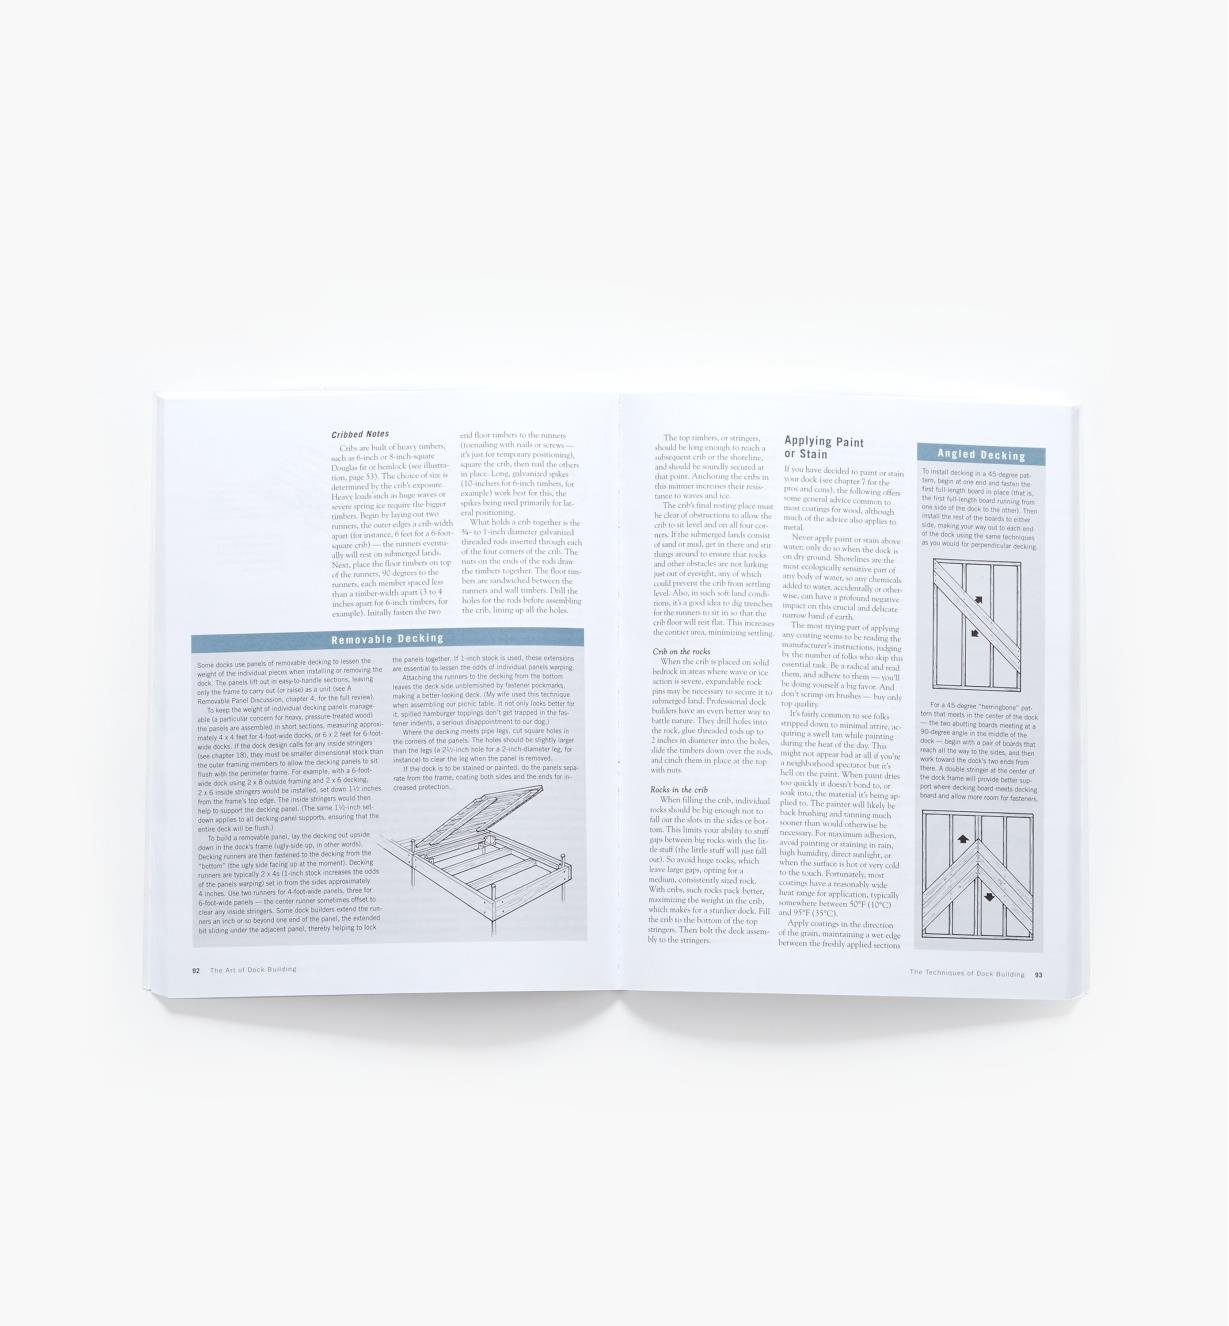 49L0906 - The Dock Manual